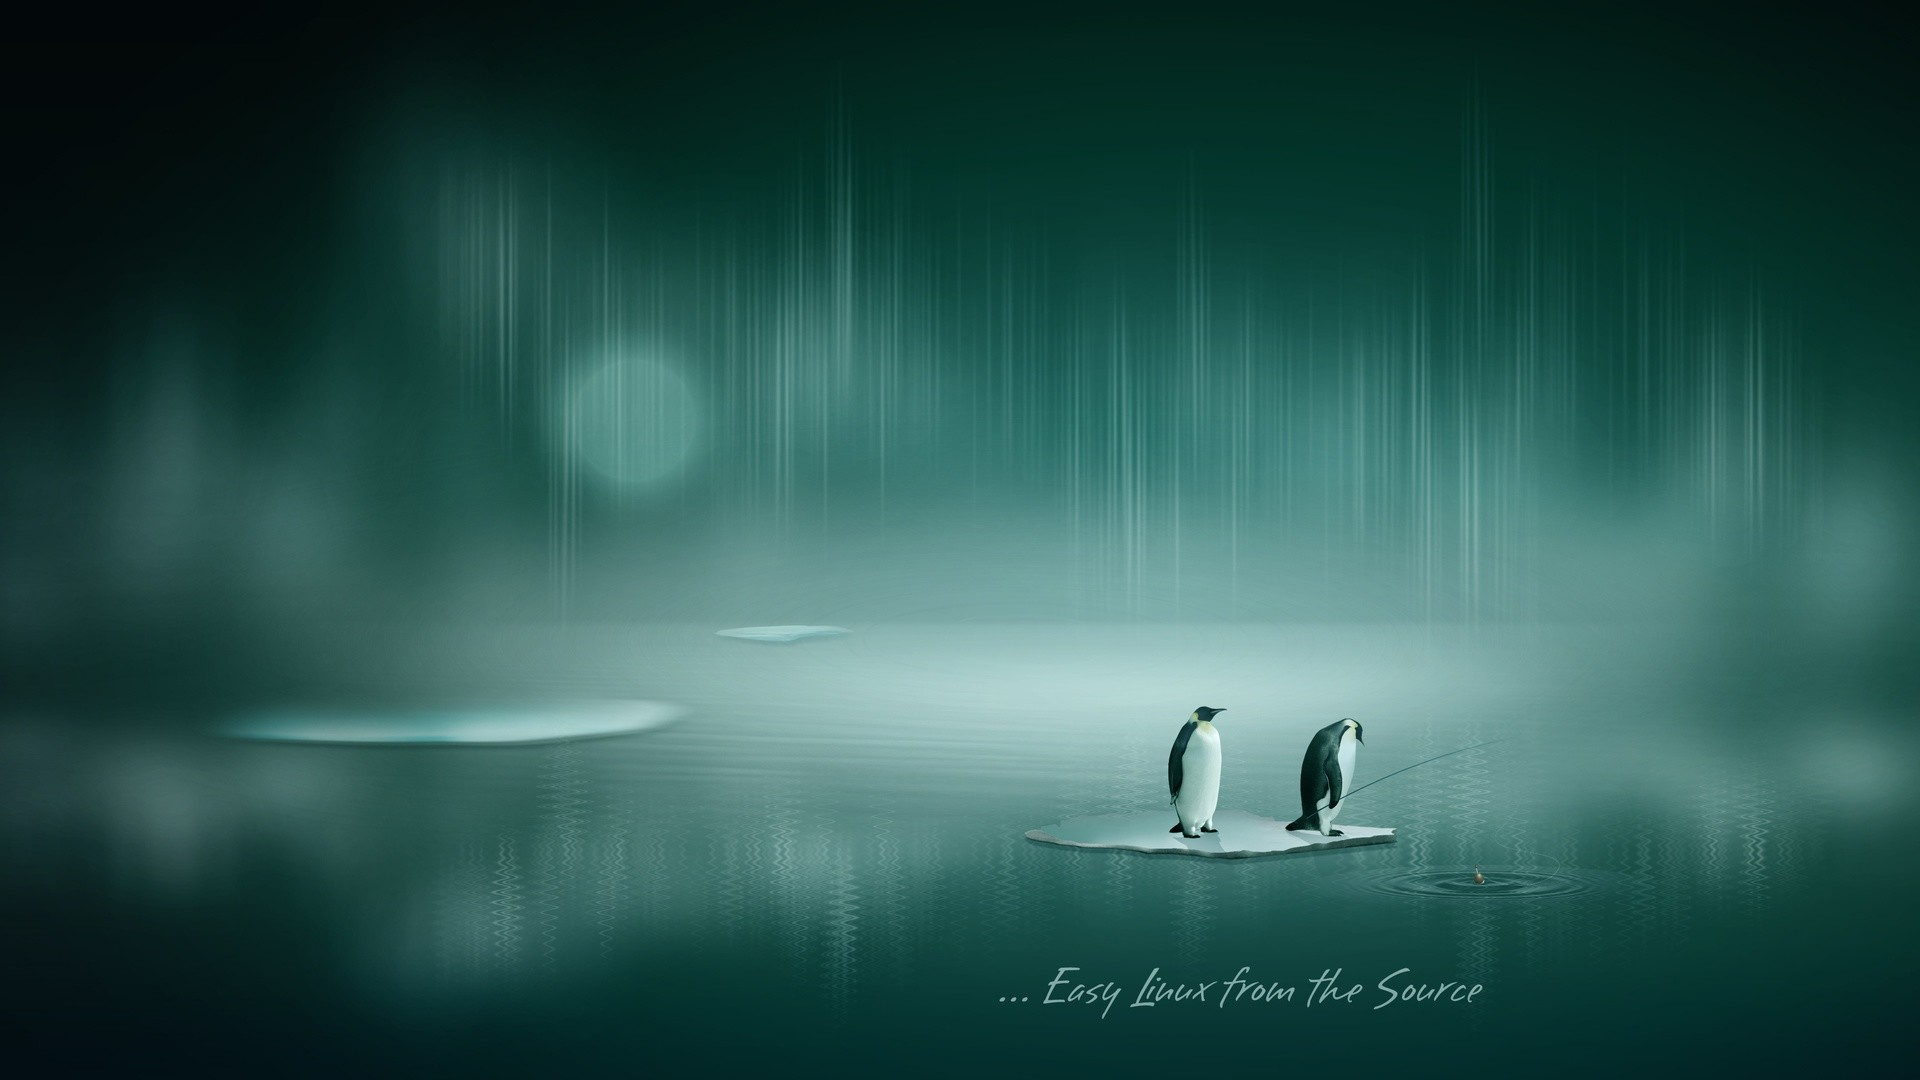 Res: 1920x1080, Get this package - Get more Calculate Linux wallpapers - Official site of  Calculate Linux.